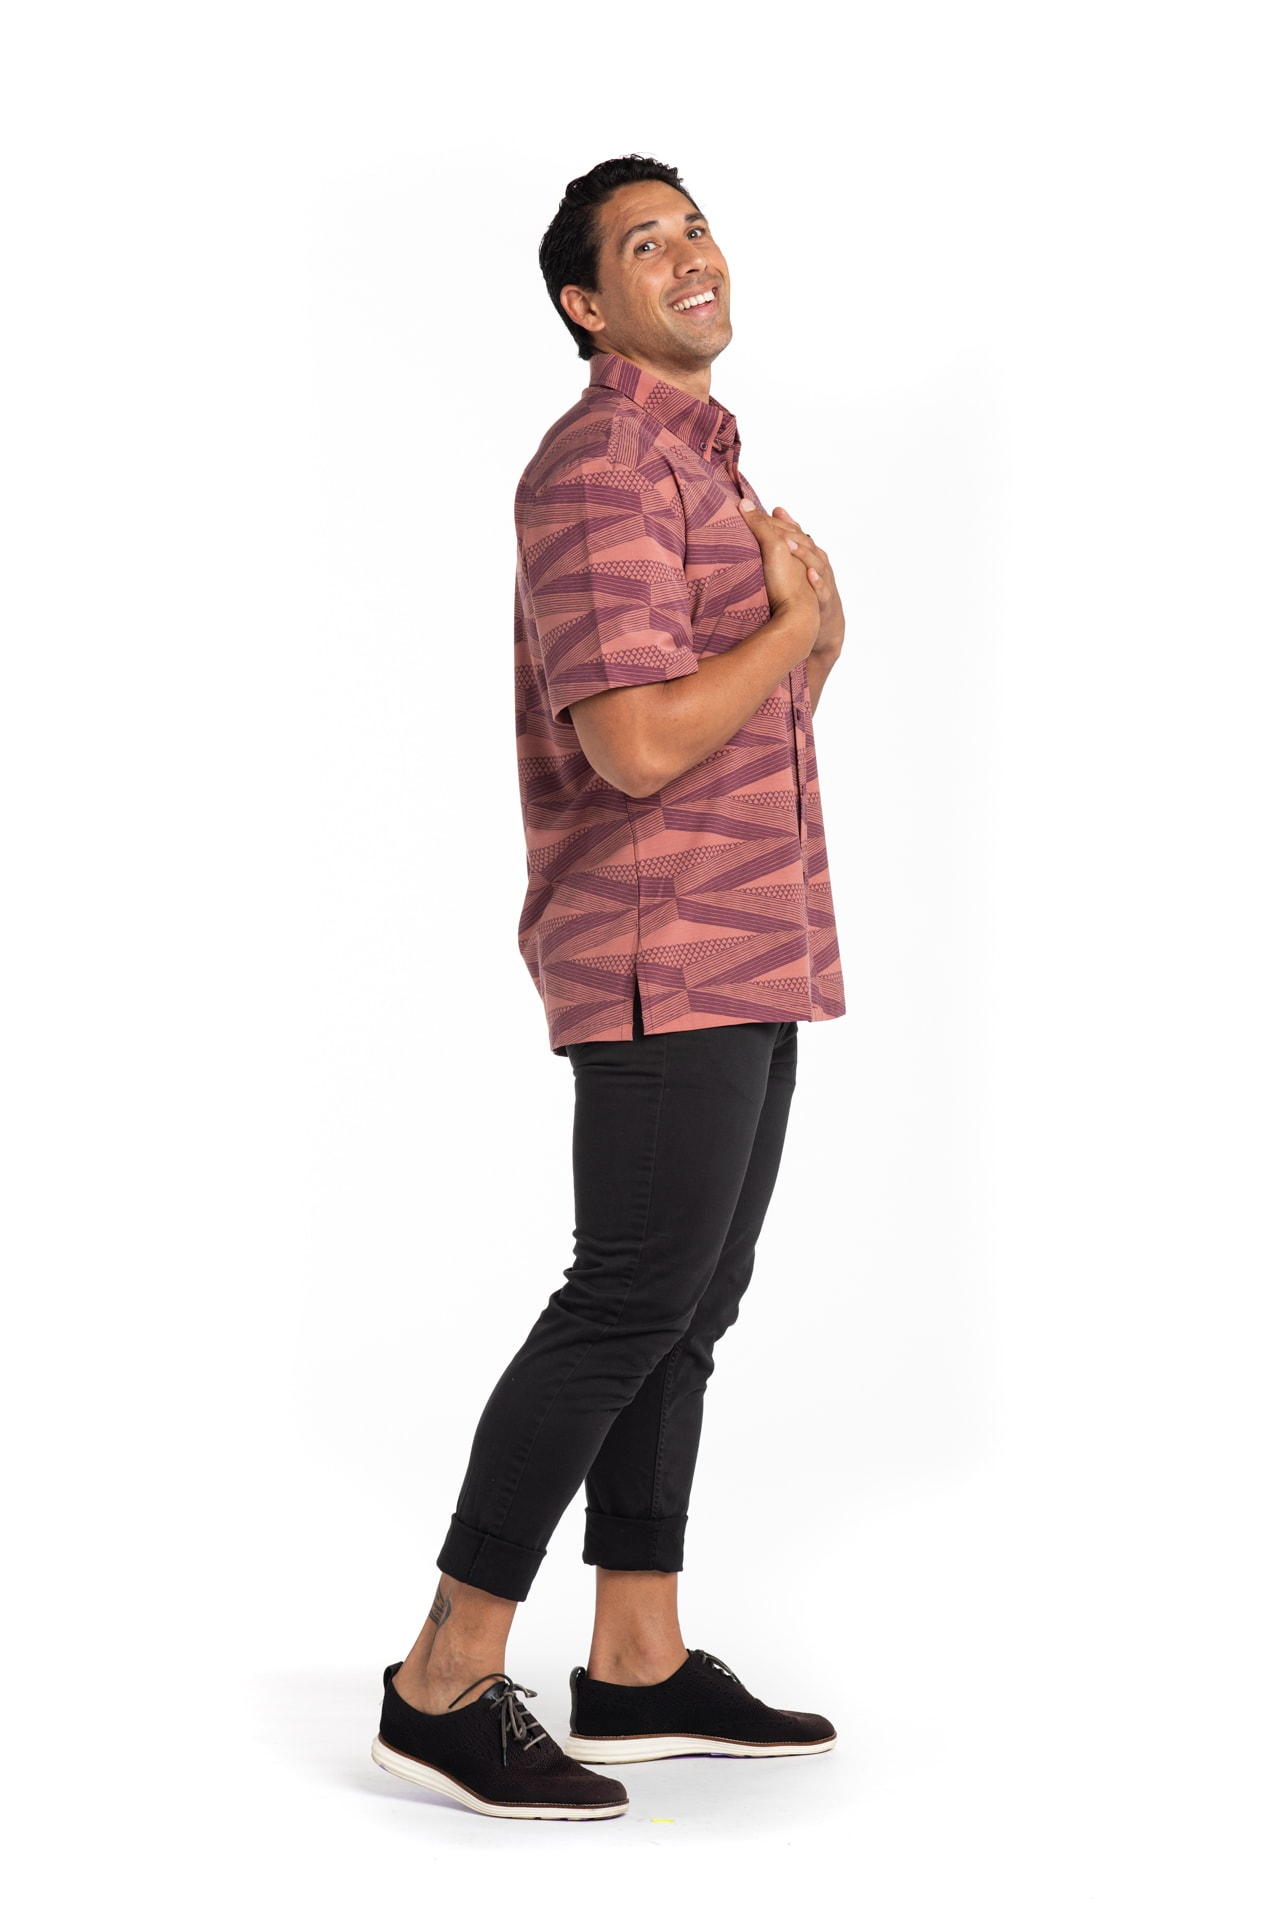 Male Model wearing Mahalo Nui Shirt in Copper - Side View